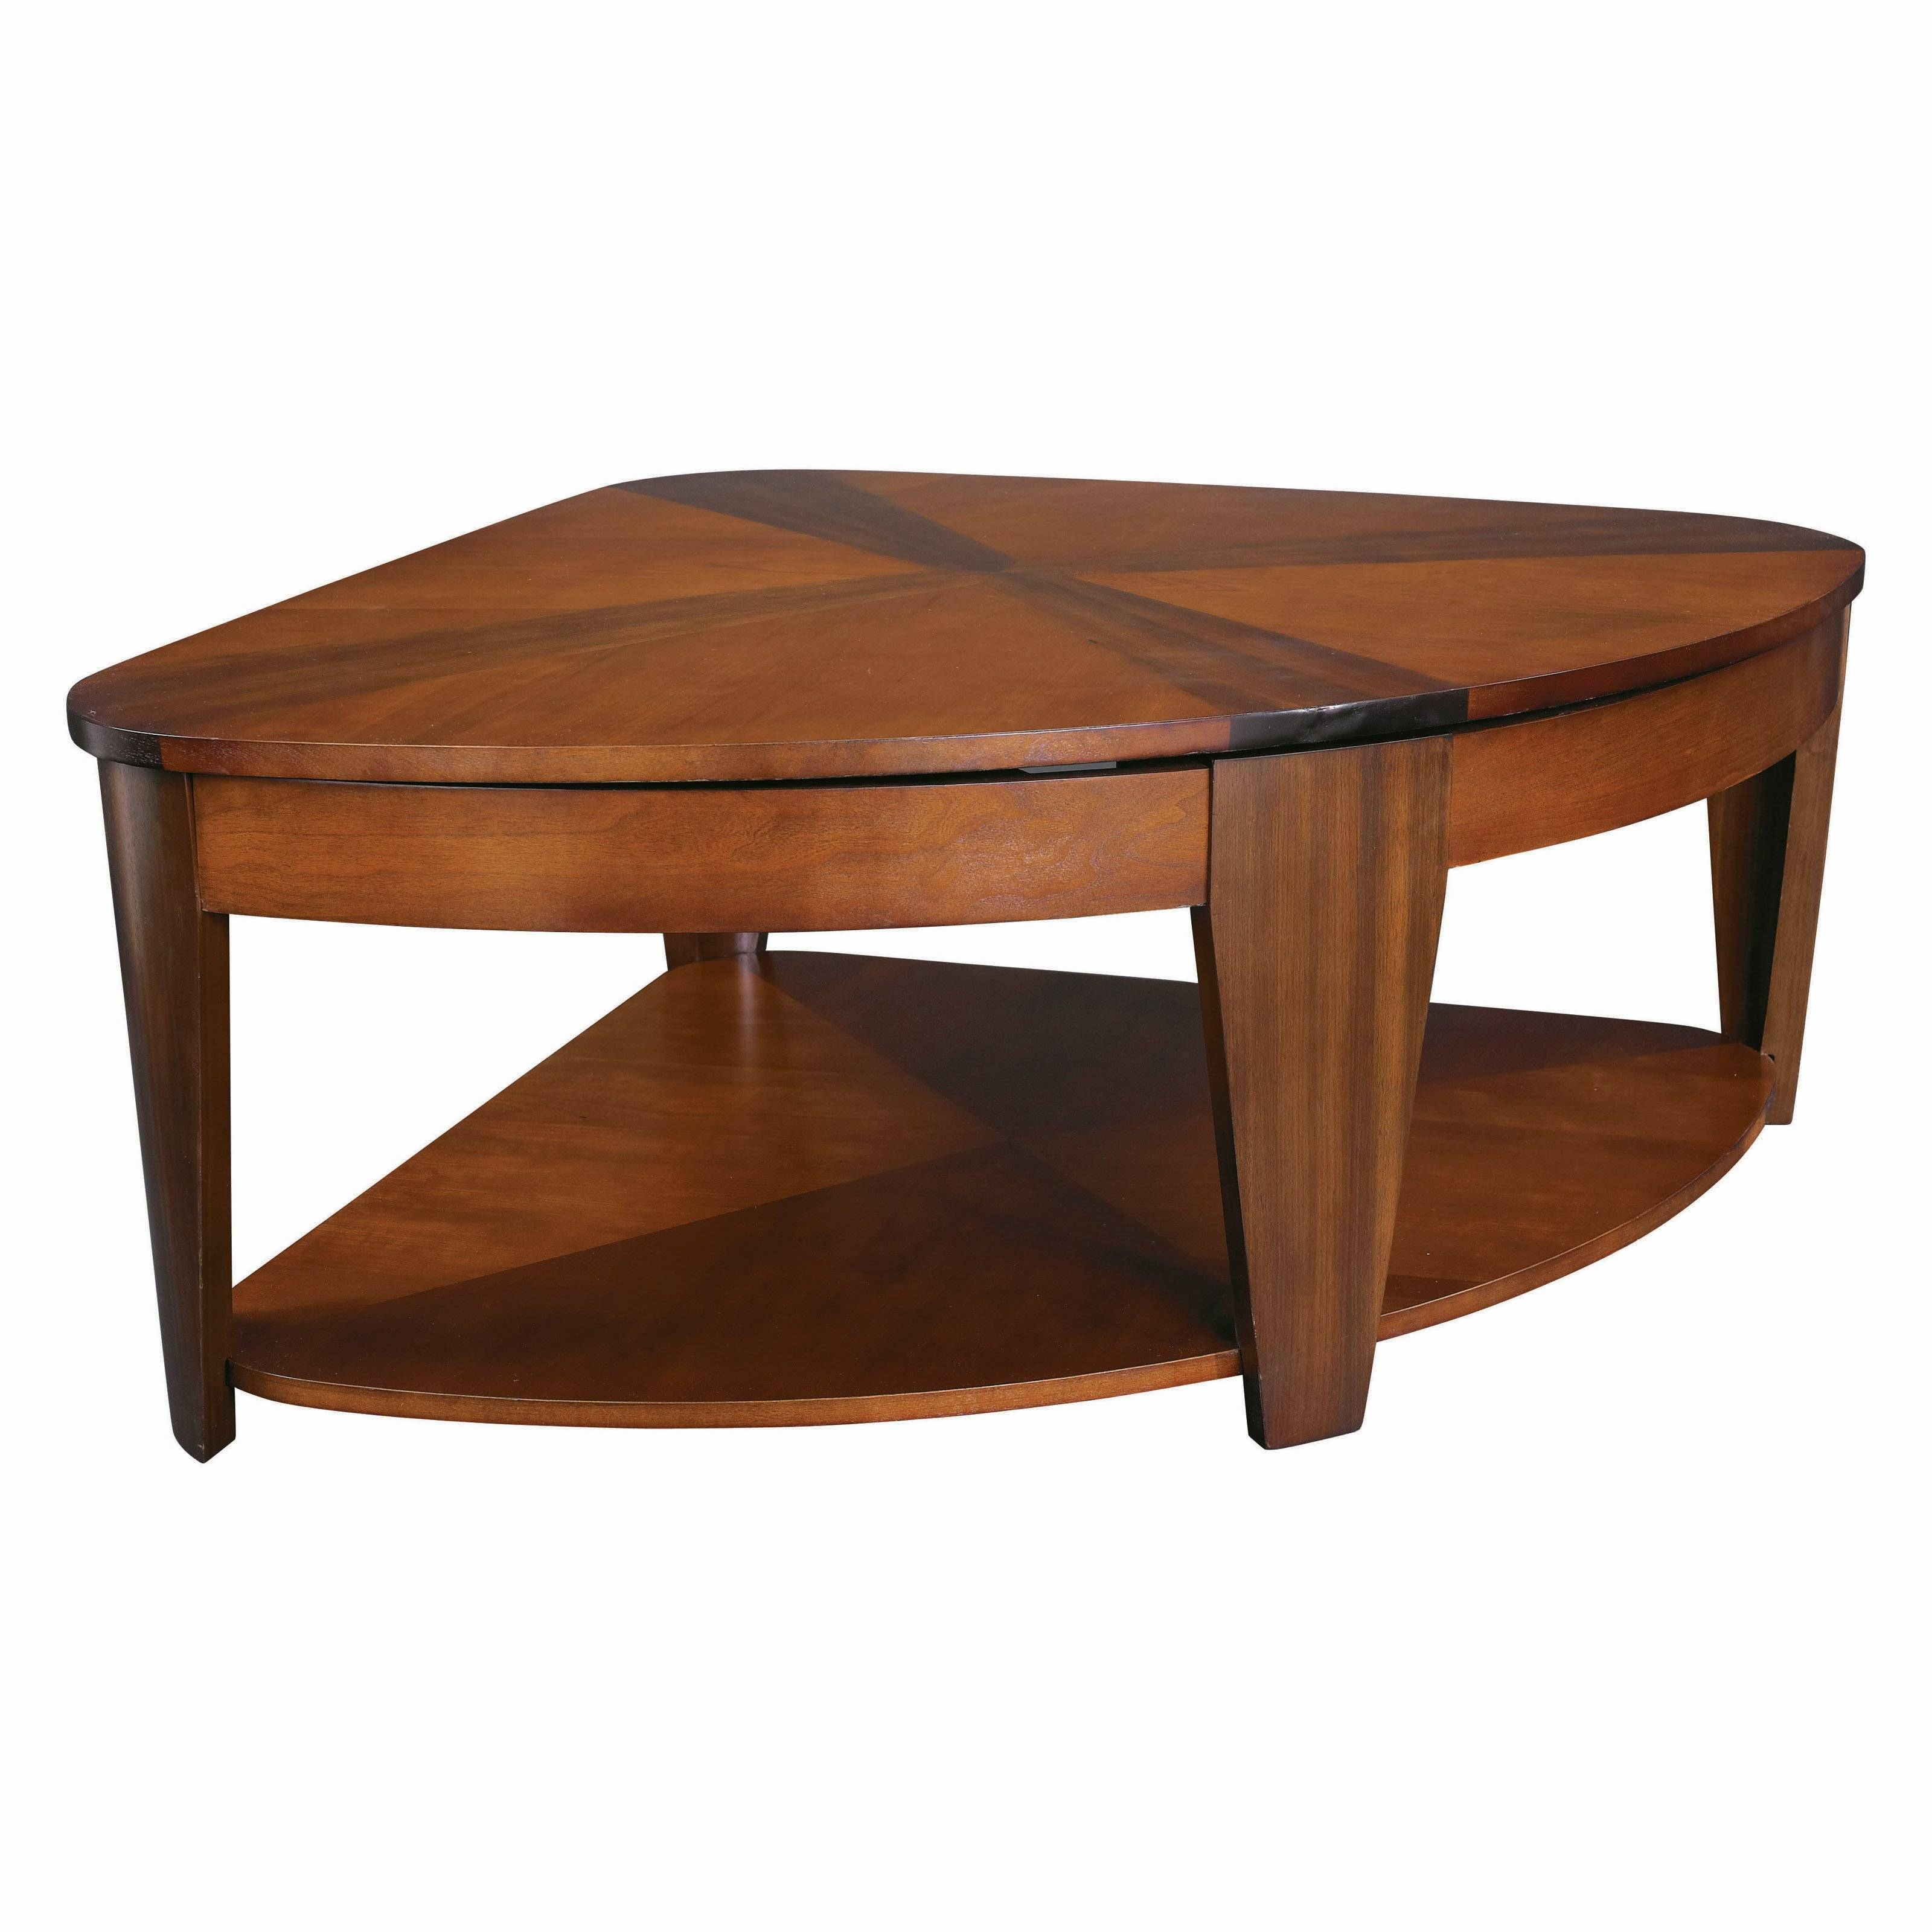 Hammary Oasis Wedge Lift-Top Coffee Table | Hayneedle for Lift Up Top Coffee Tables (Image 14 of 30)